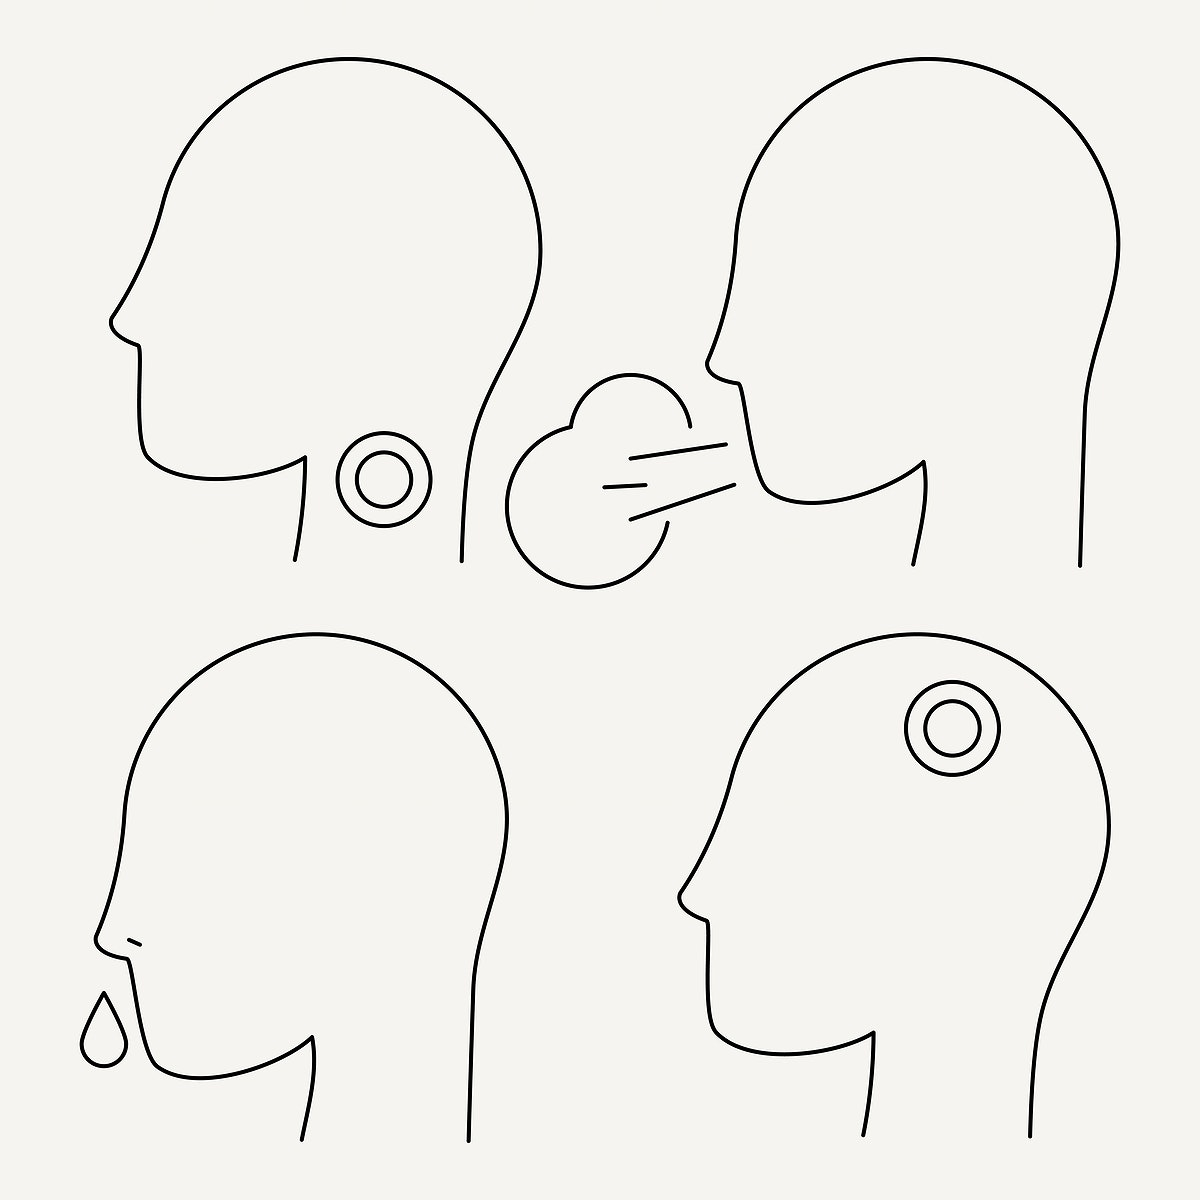 Coronavirus signs and symptoms line drawing character element set vector